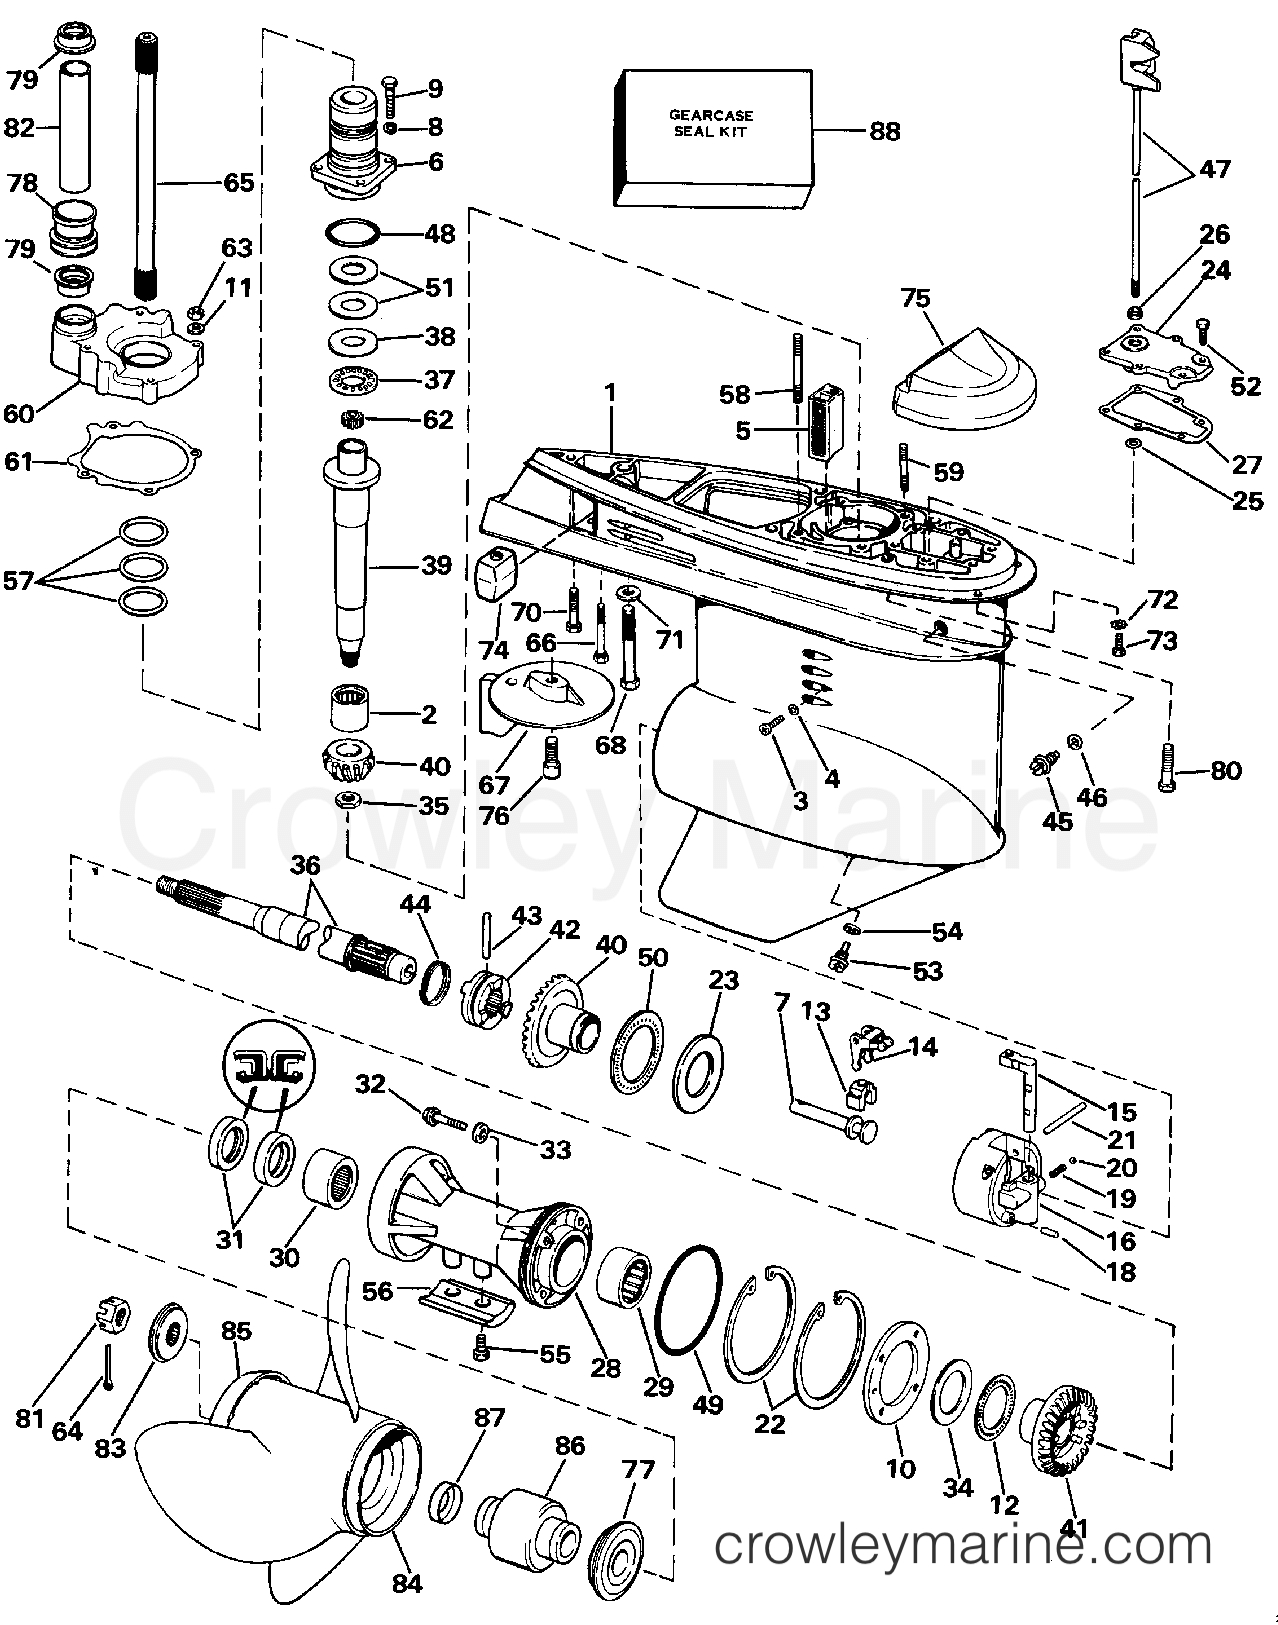 mando alternator wiring diagram 1989 honda accord lower gearcase 1988 omc stern drive 2 3 232amrgde